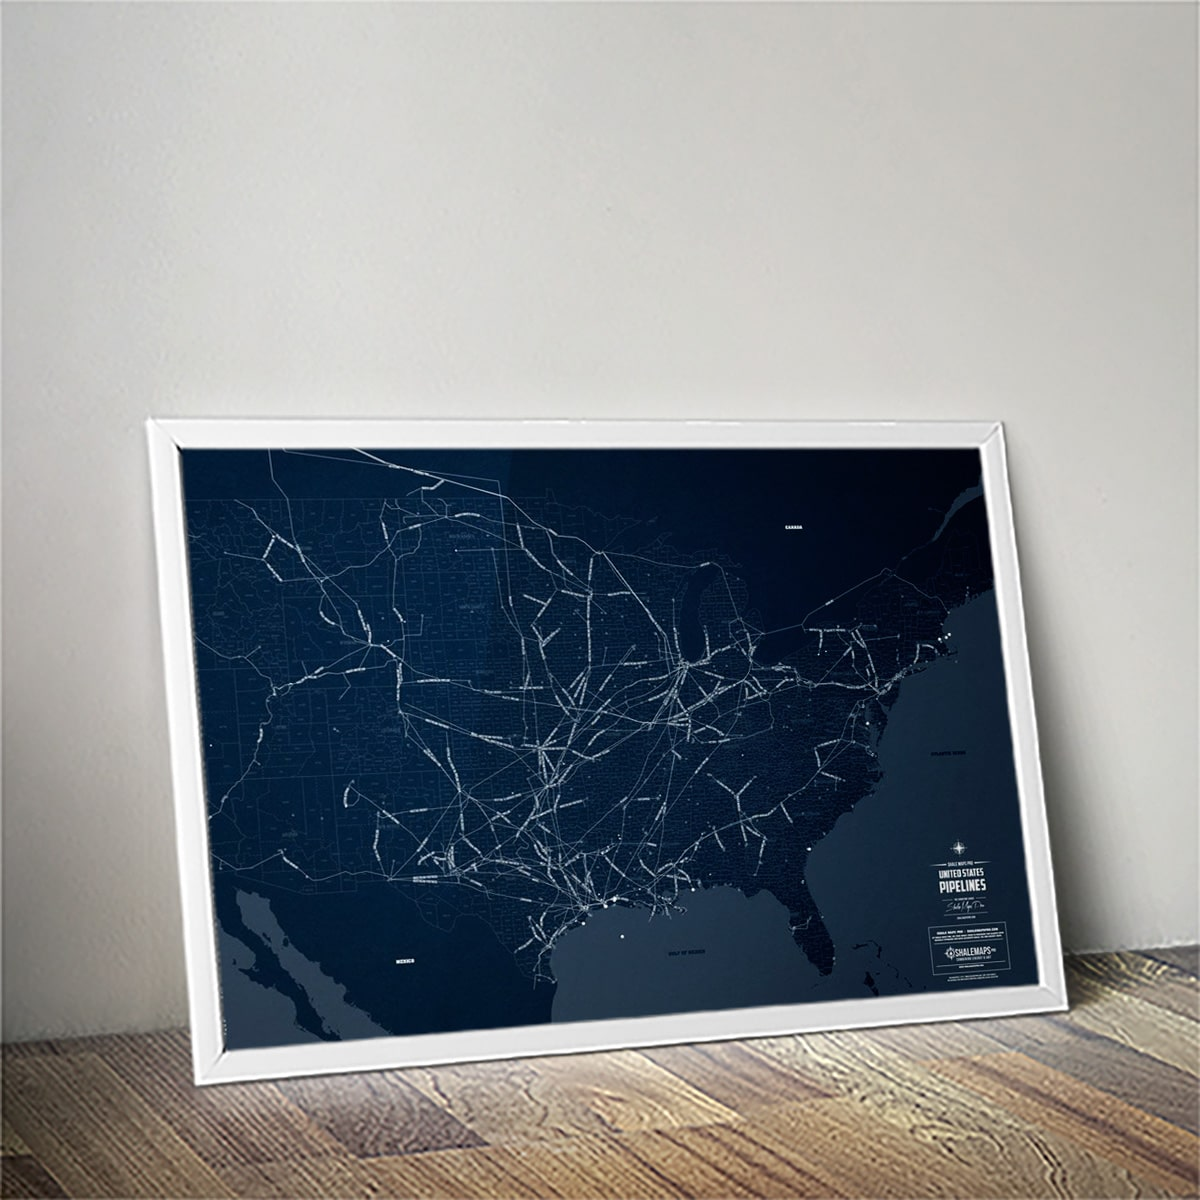 United States Oil & Gas Pipelines Map